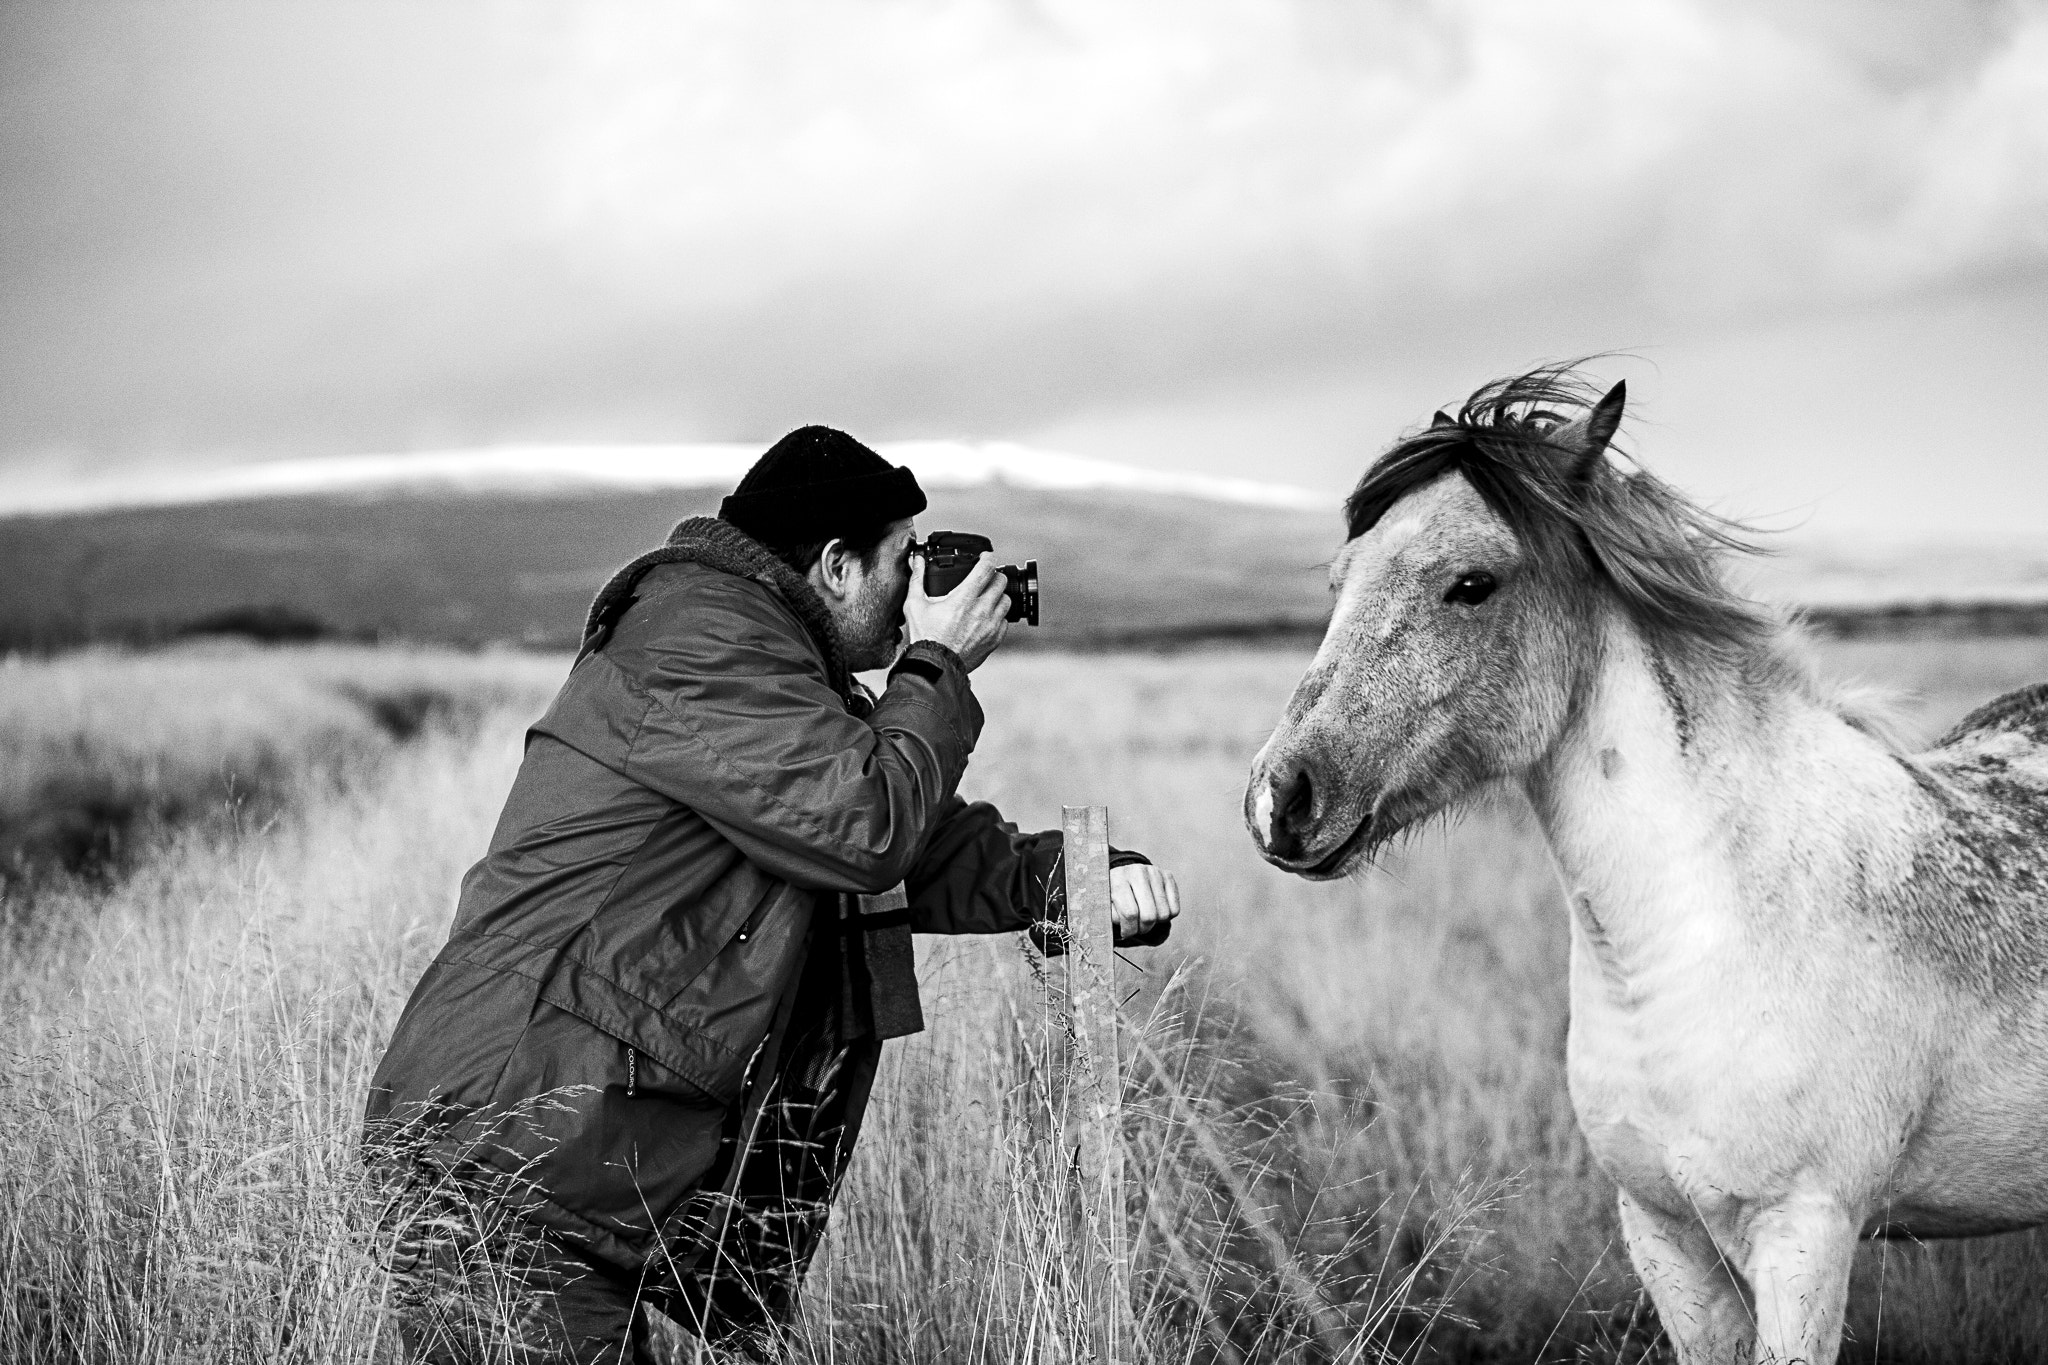 Photograph Photographer @ work by Hermann Sigurdsson on 500px